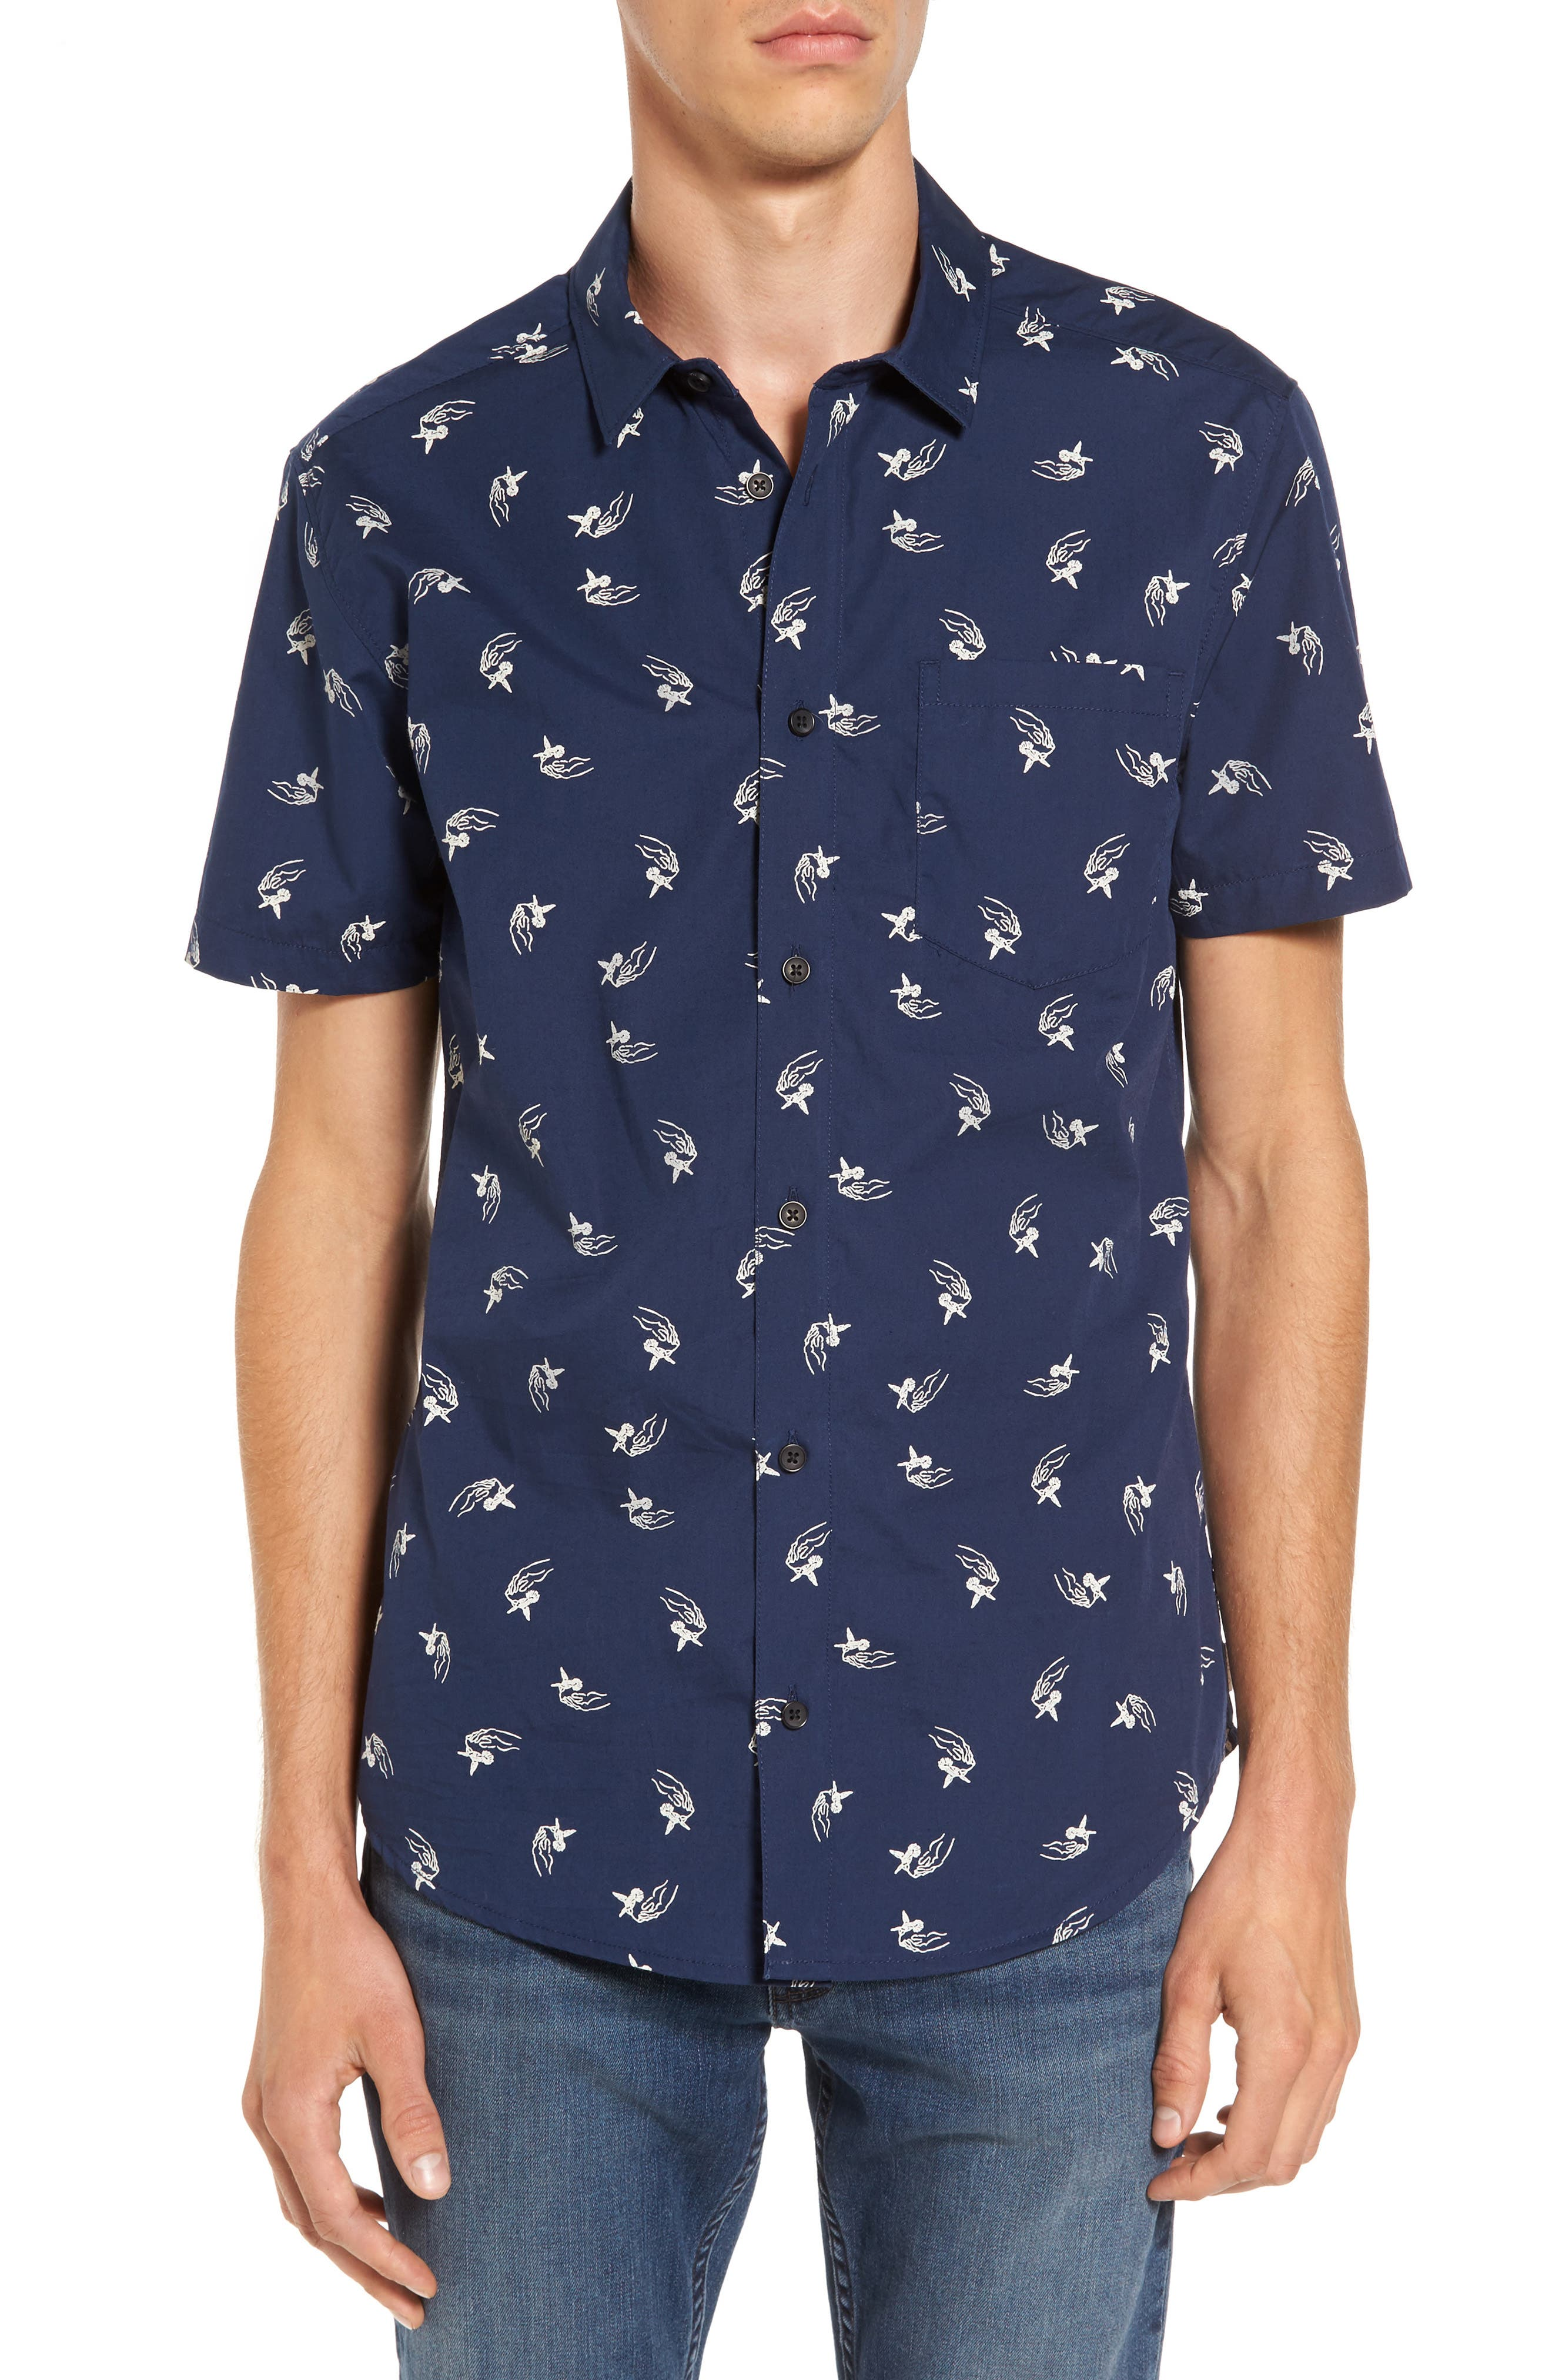 Alternate Image 1 Selected - RVCA x Kevin Long Hummingbird Woven Shirt